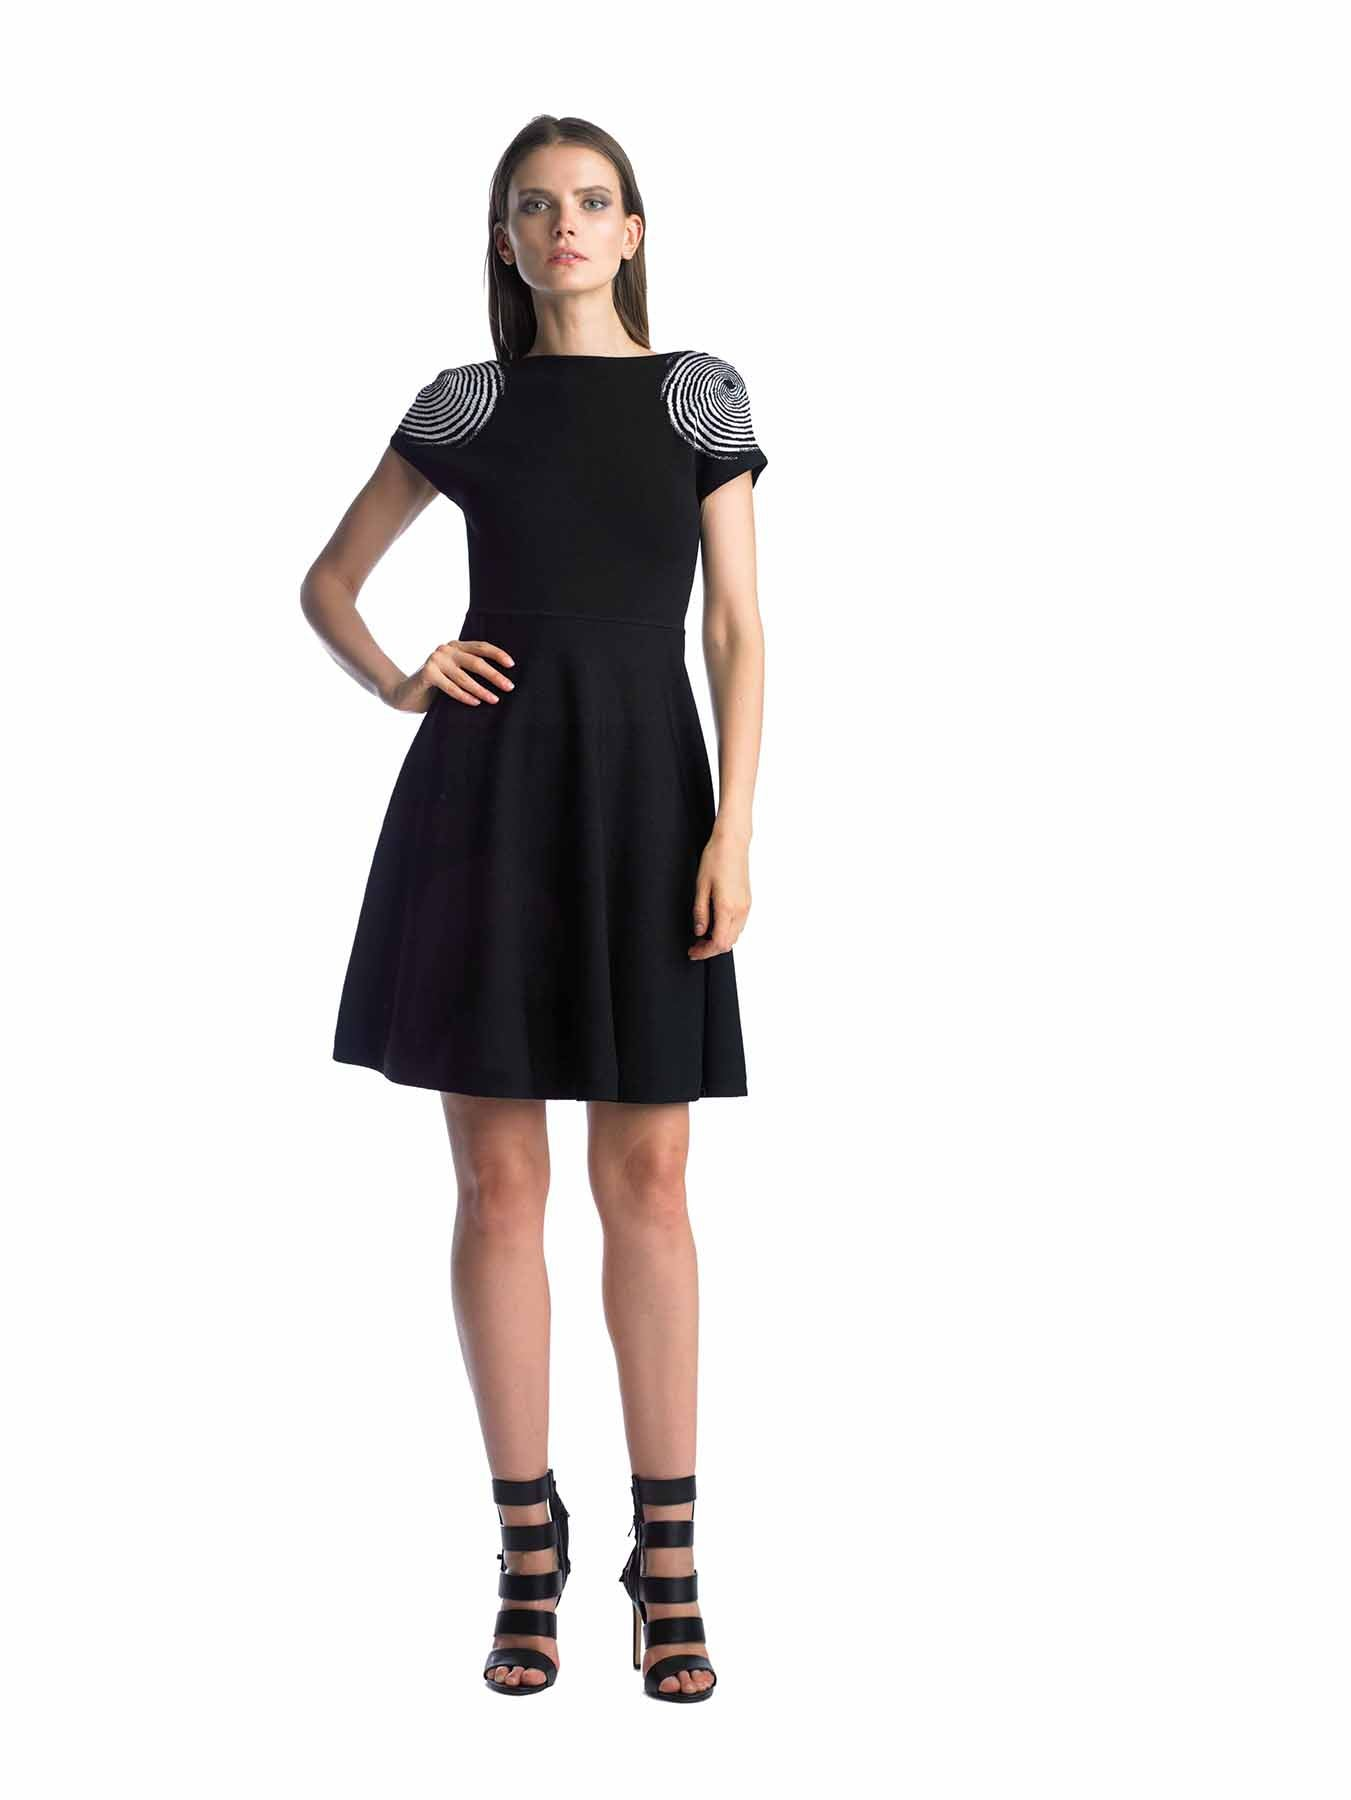 Historic New York Fingerprint Jacquard Fit & Flare Knit Dress - Historic New York